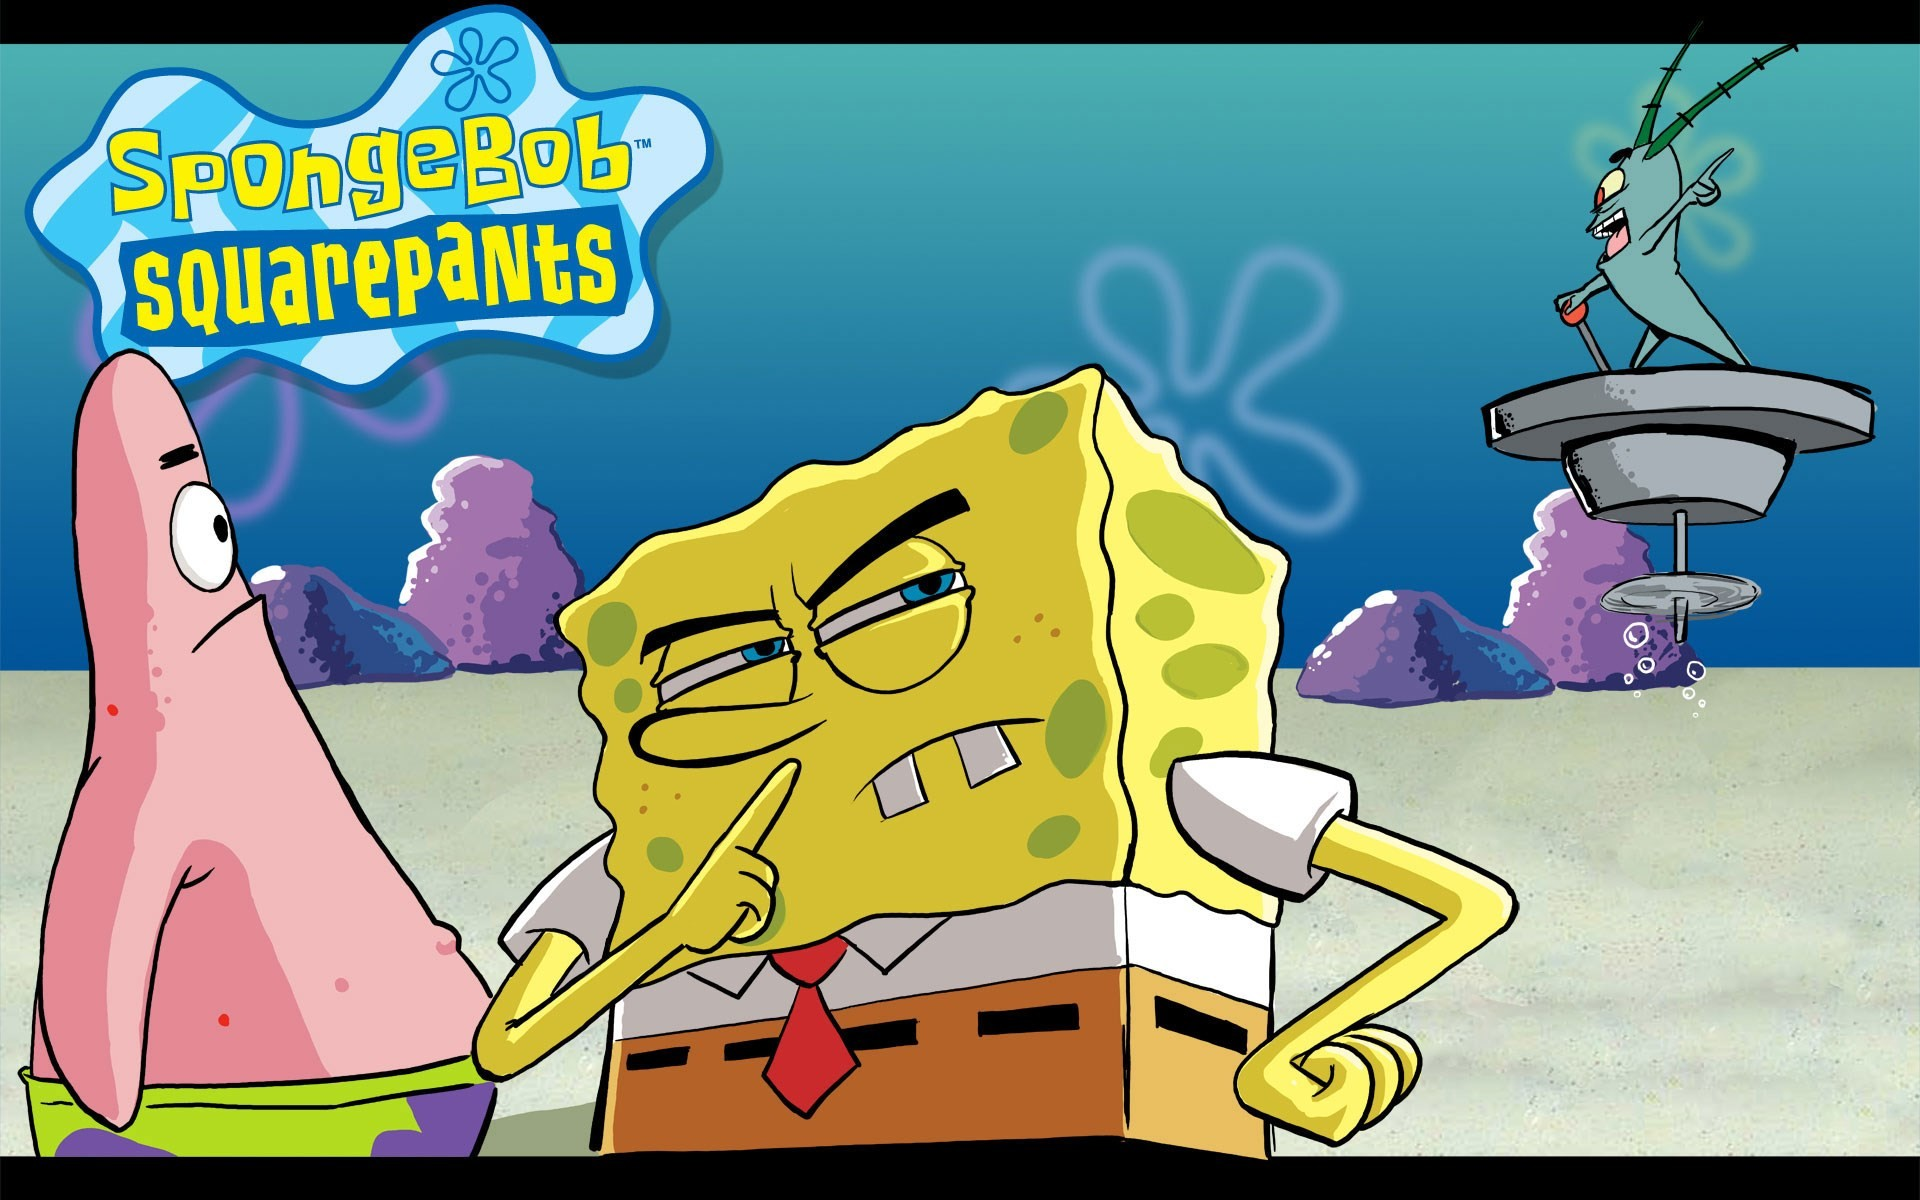 1920x1200 Background High Resolution: spongebob squarepants